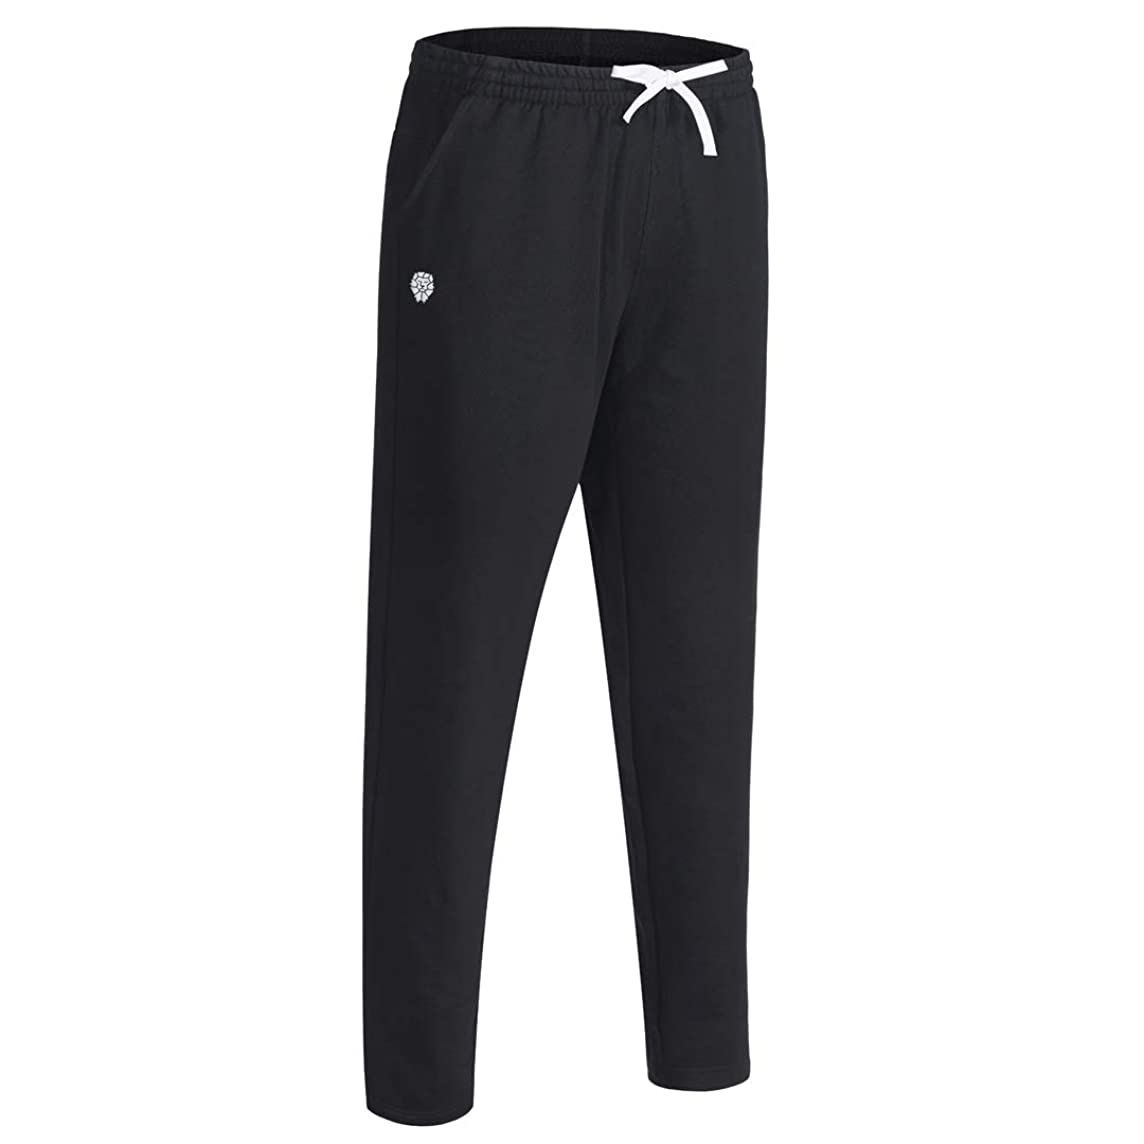 PIQIDIG Boys Tapered Athletic Pants Youth Sweatpants with Pockets for Running, Training, Soccer